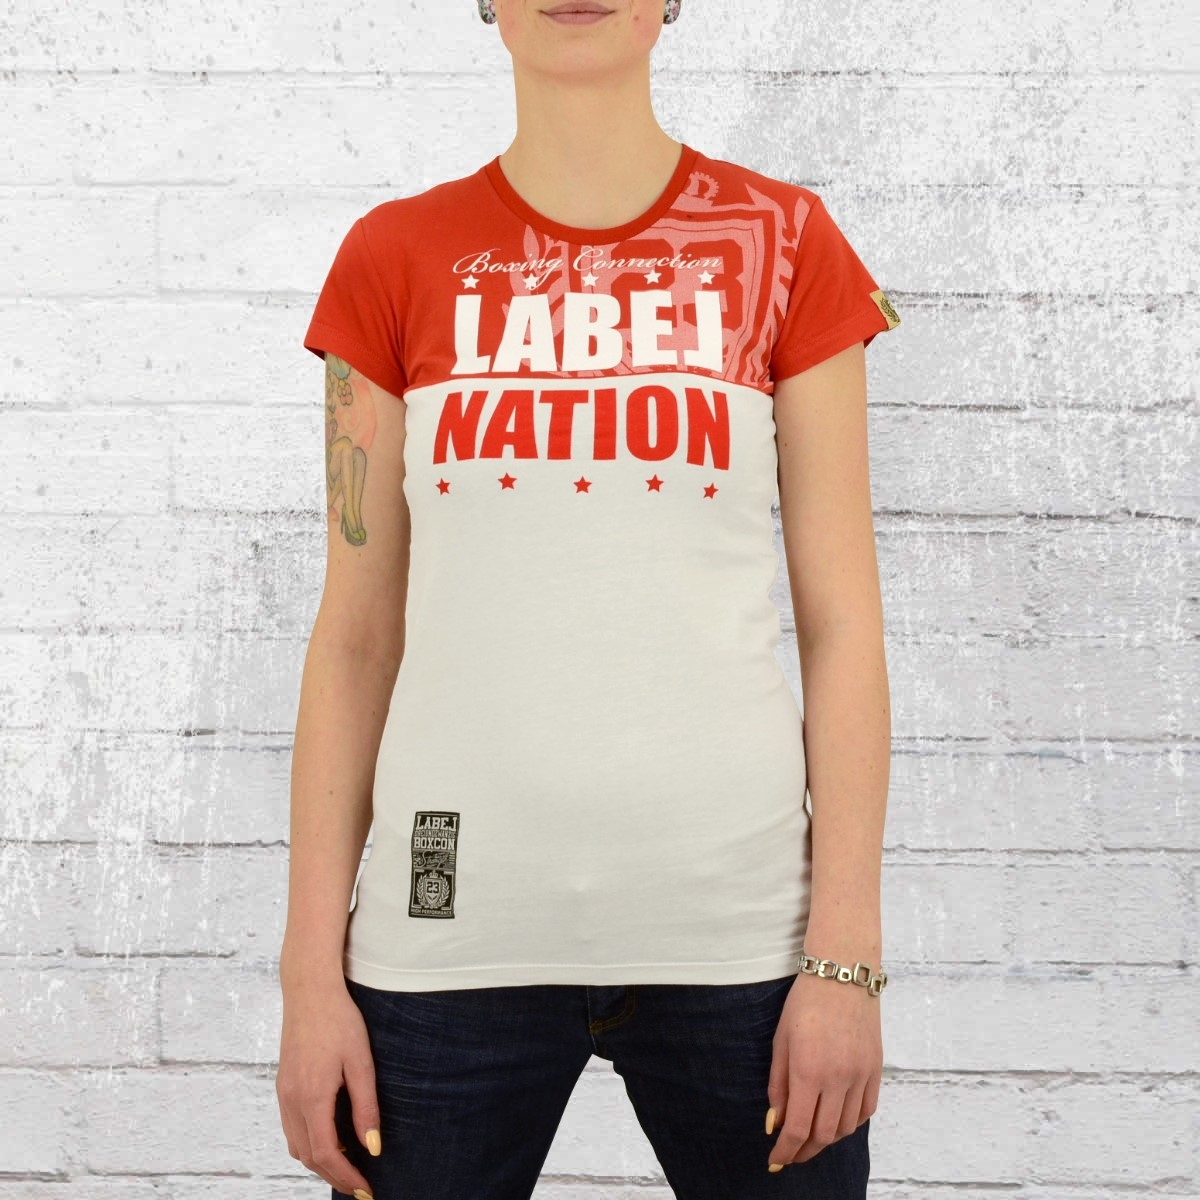 Label 23 Damen T-Shirt Label Nation weiss rot